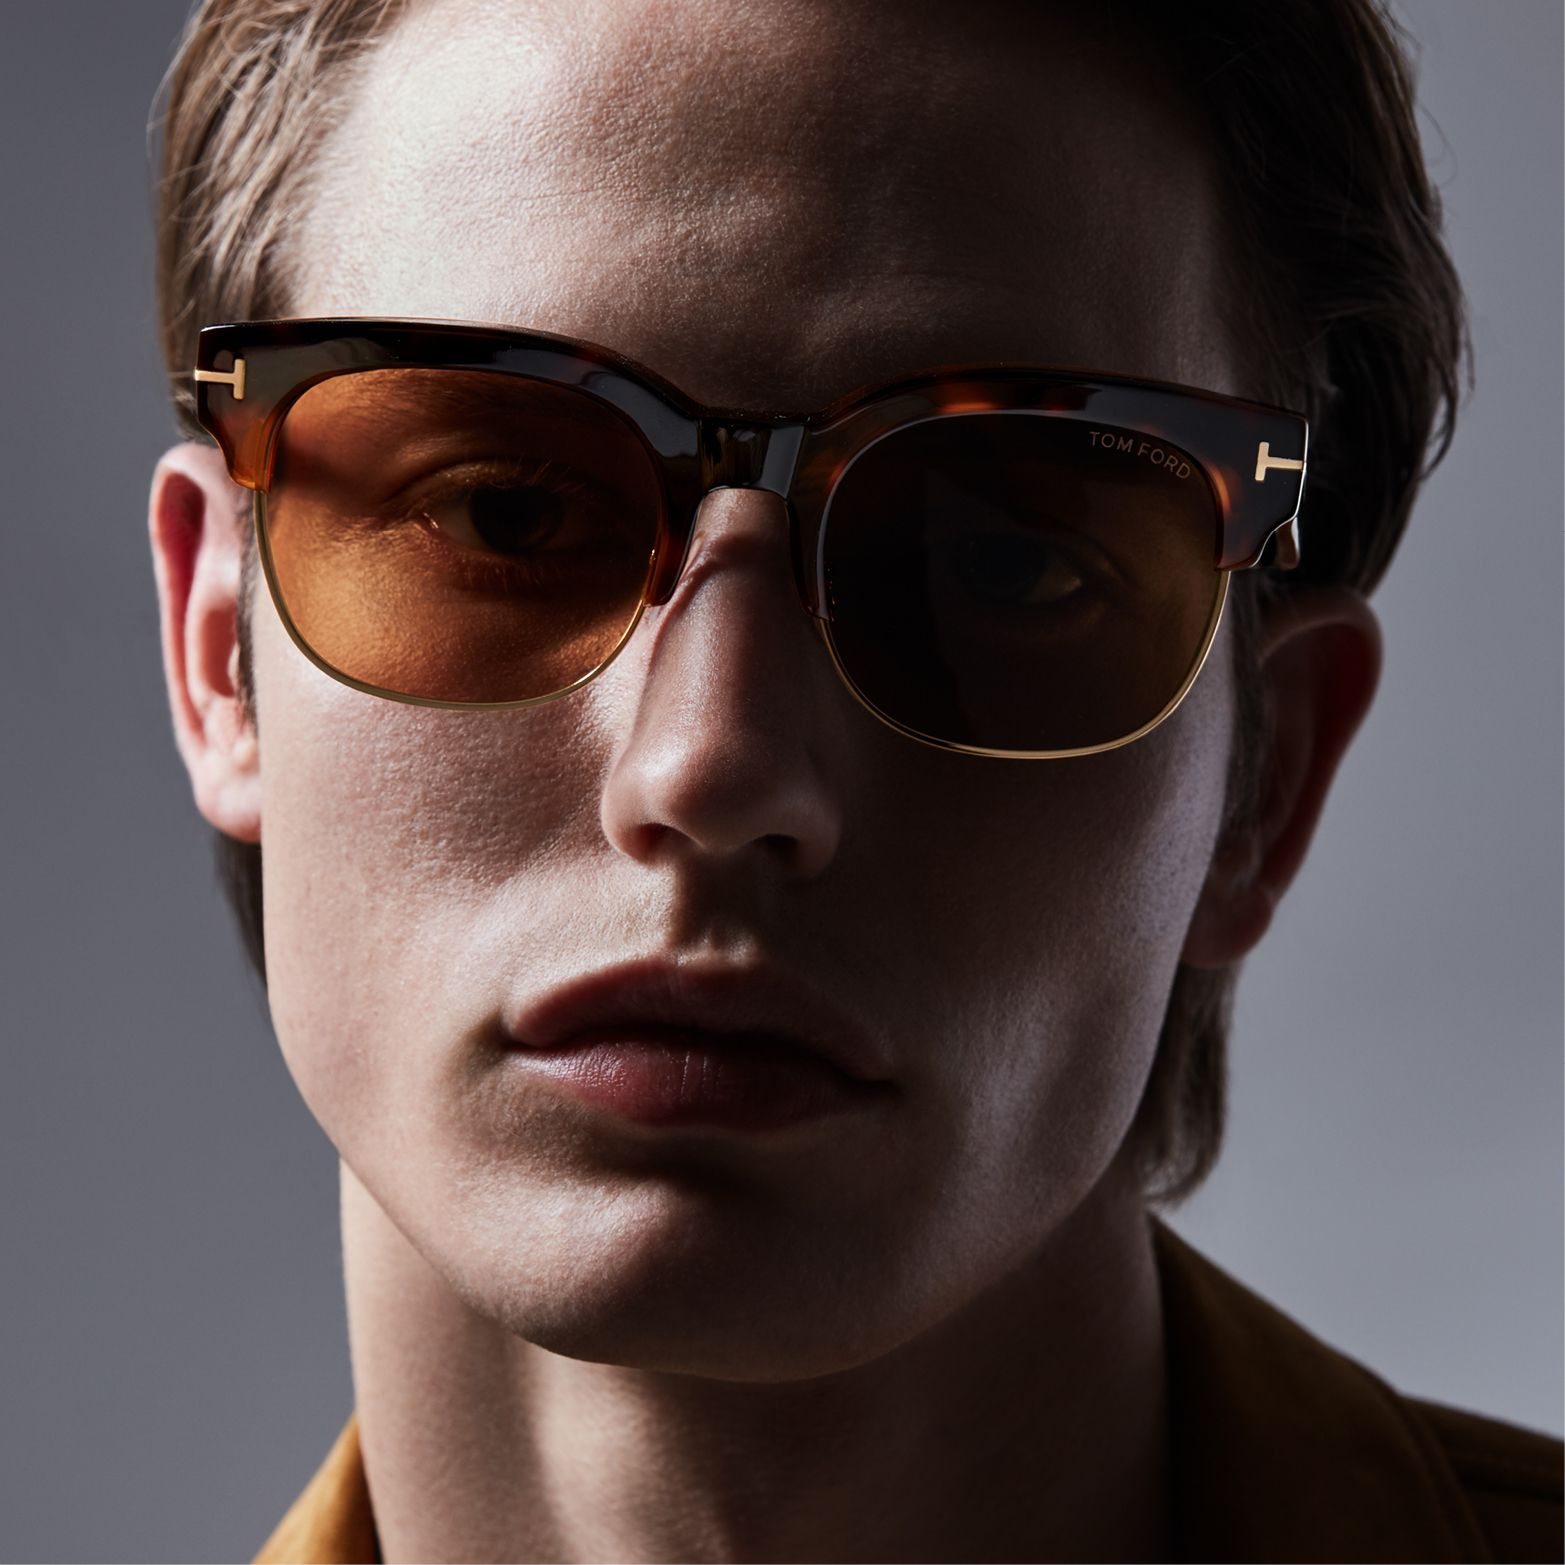 The Harry Sunglasses Tomford